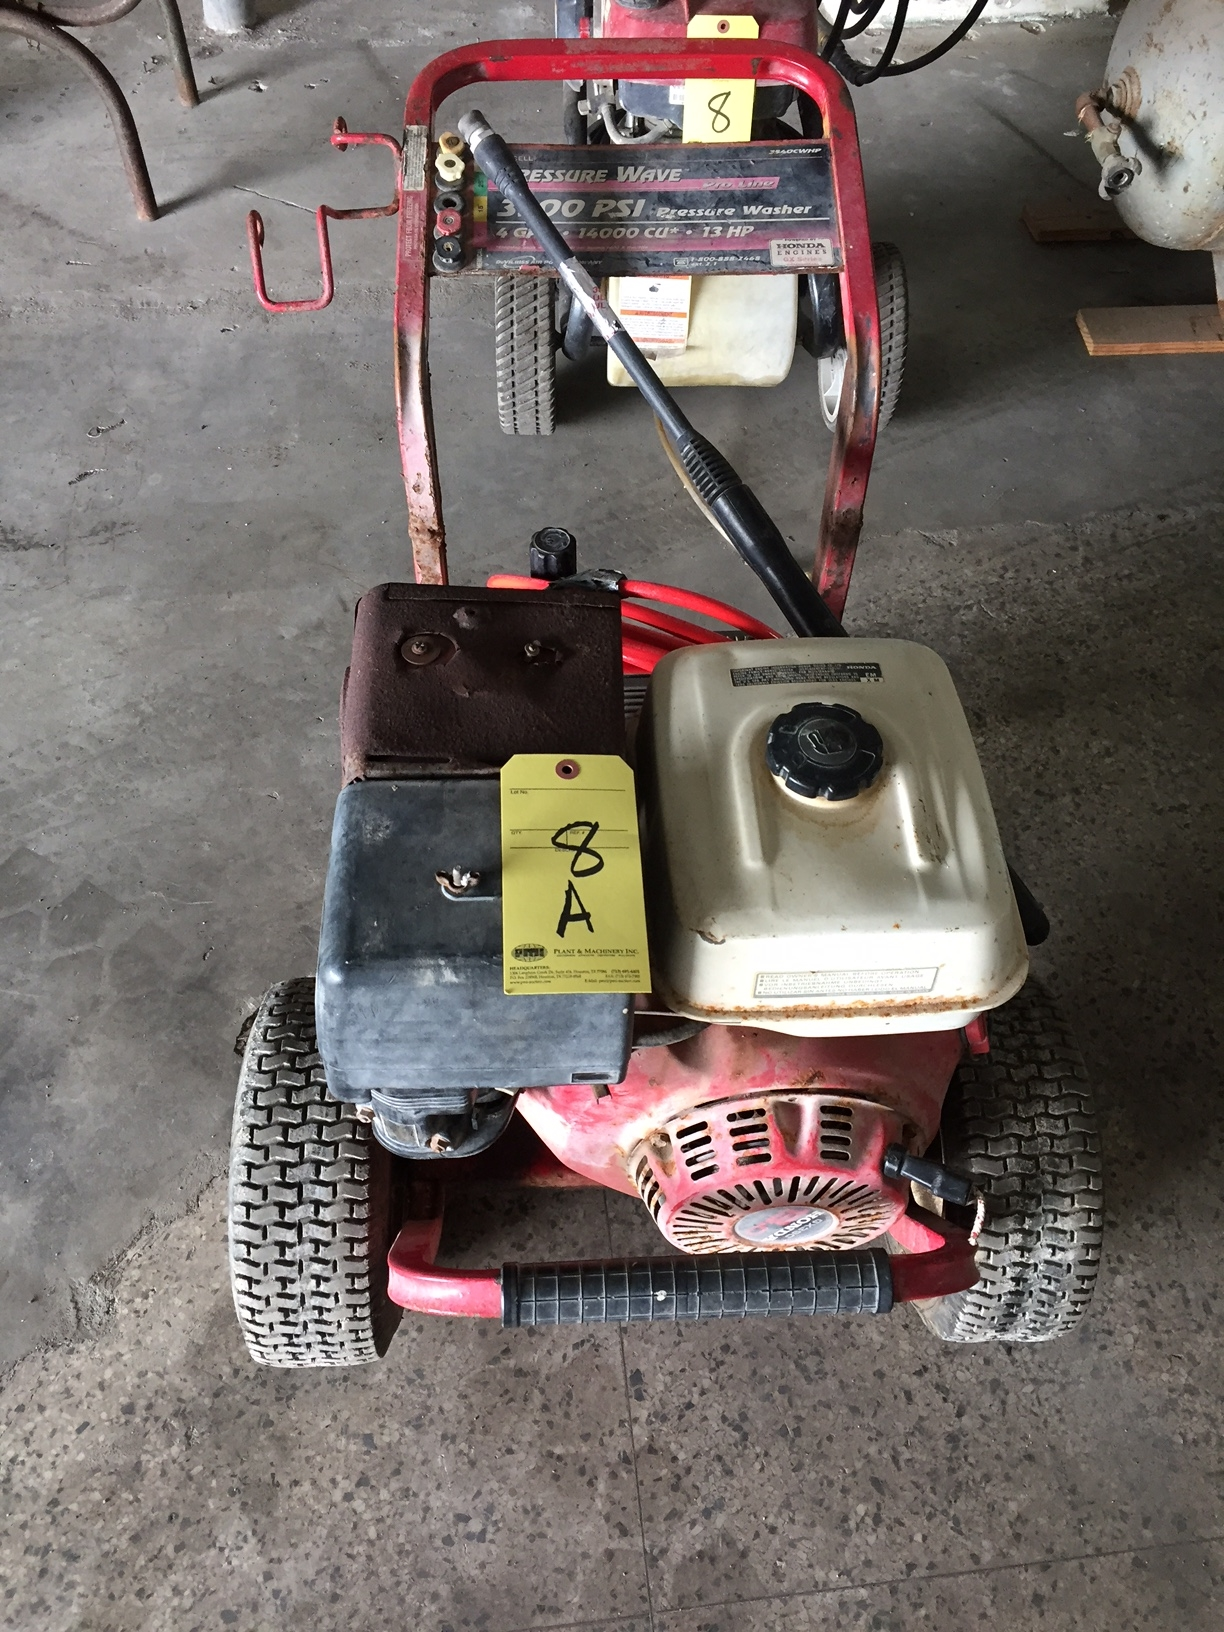 Lot 8A - PRESSURE WASHER, HONDA, PRESSURE WAVE 3500 PSI, eng GX390